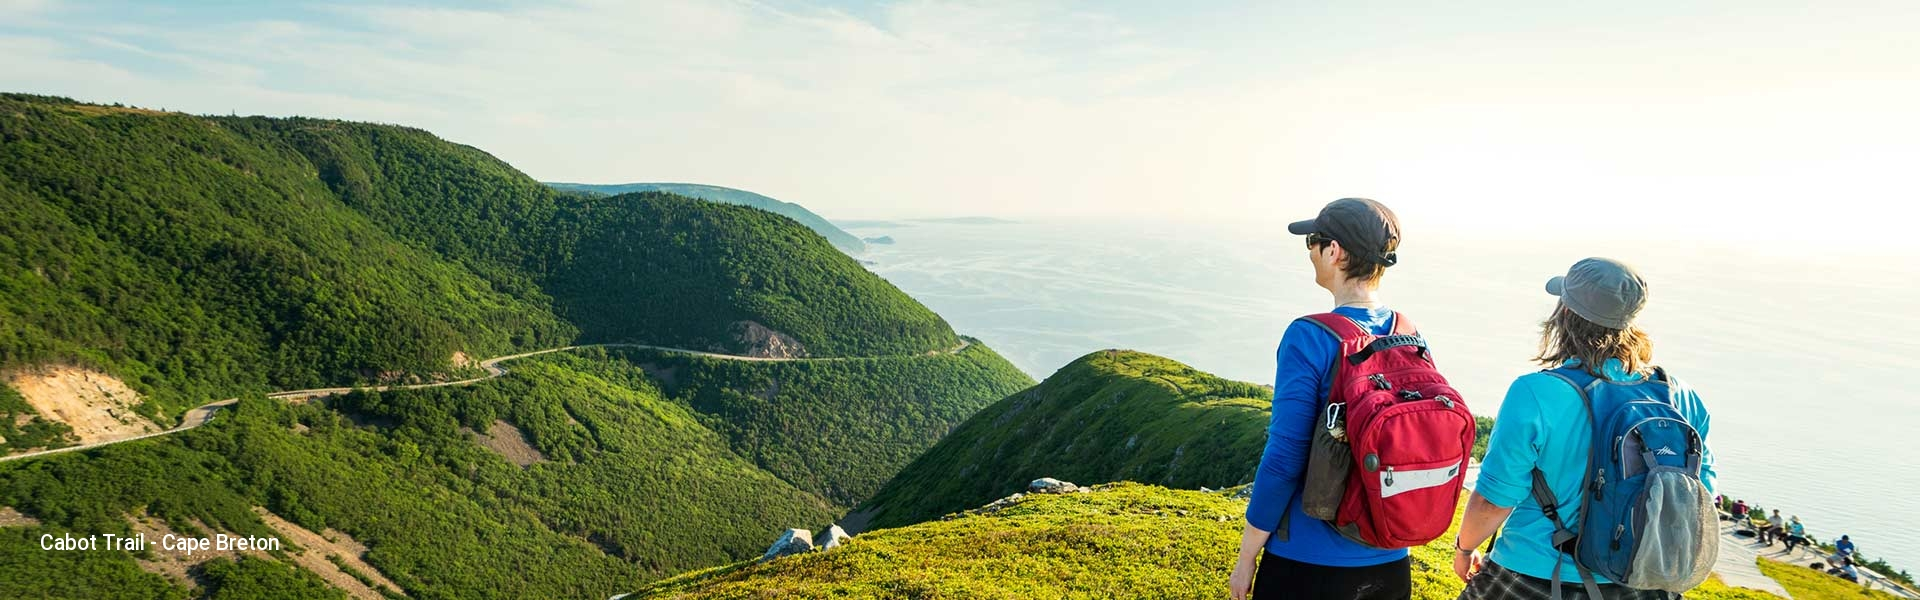 Cape Breton and the Cabot Trail